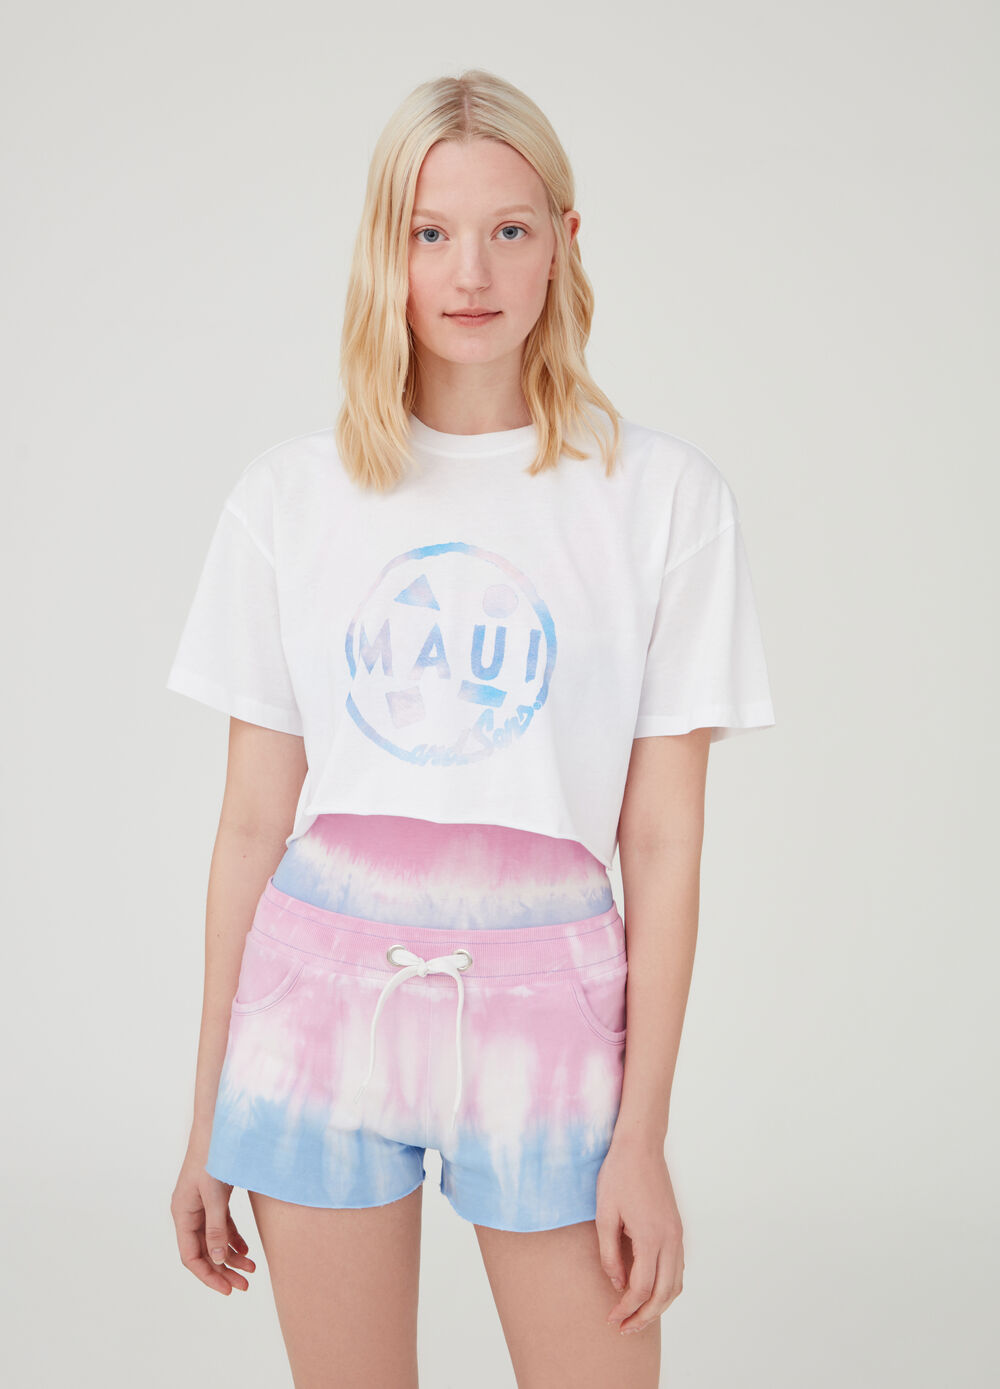 100% cotton crop T-shirt by Maui and Sons